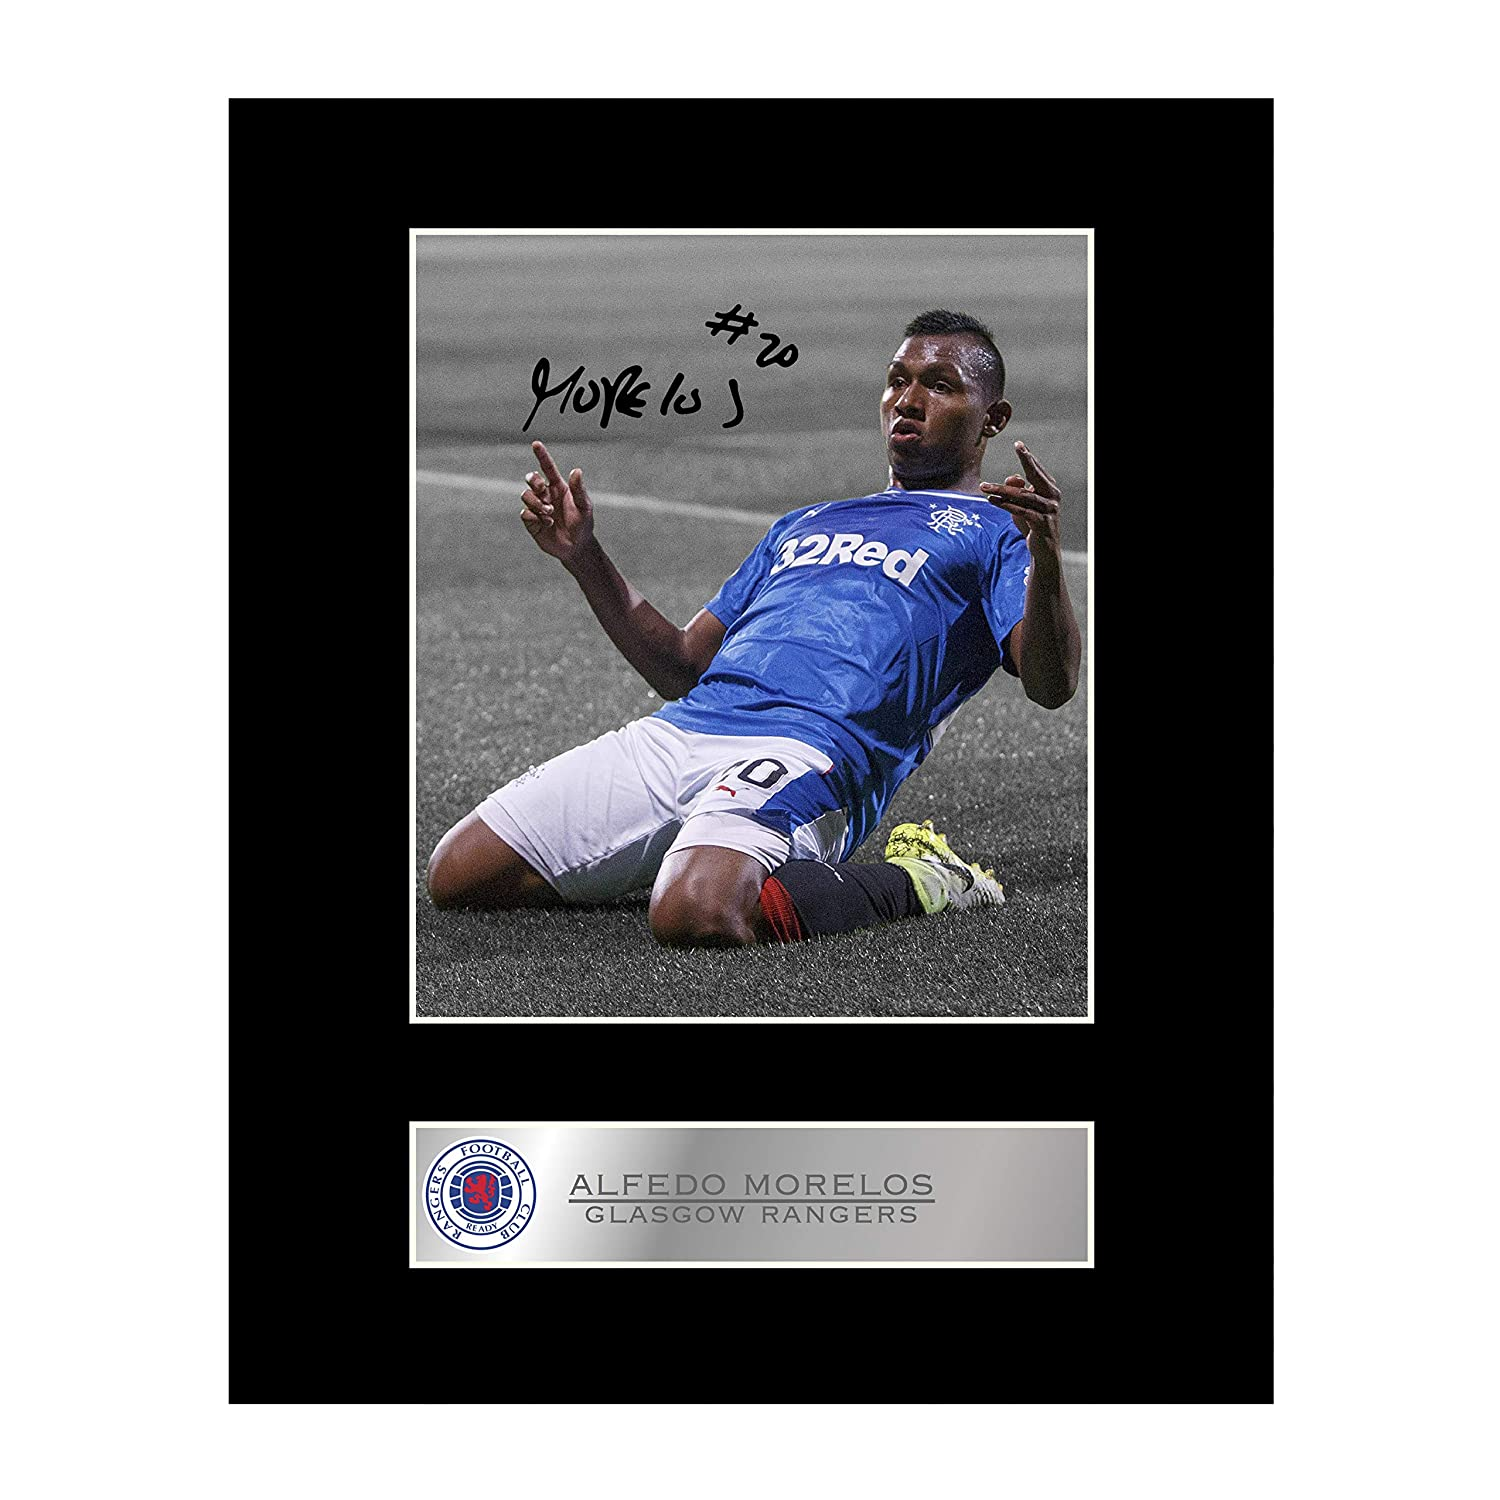 Alfredo Morelos Signed Mounted Photo Display Glasgow Rangers FC Autographed Gift Picture Print Iconic pics